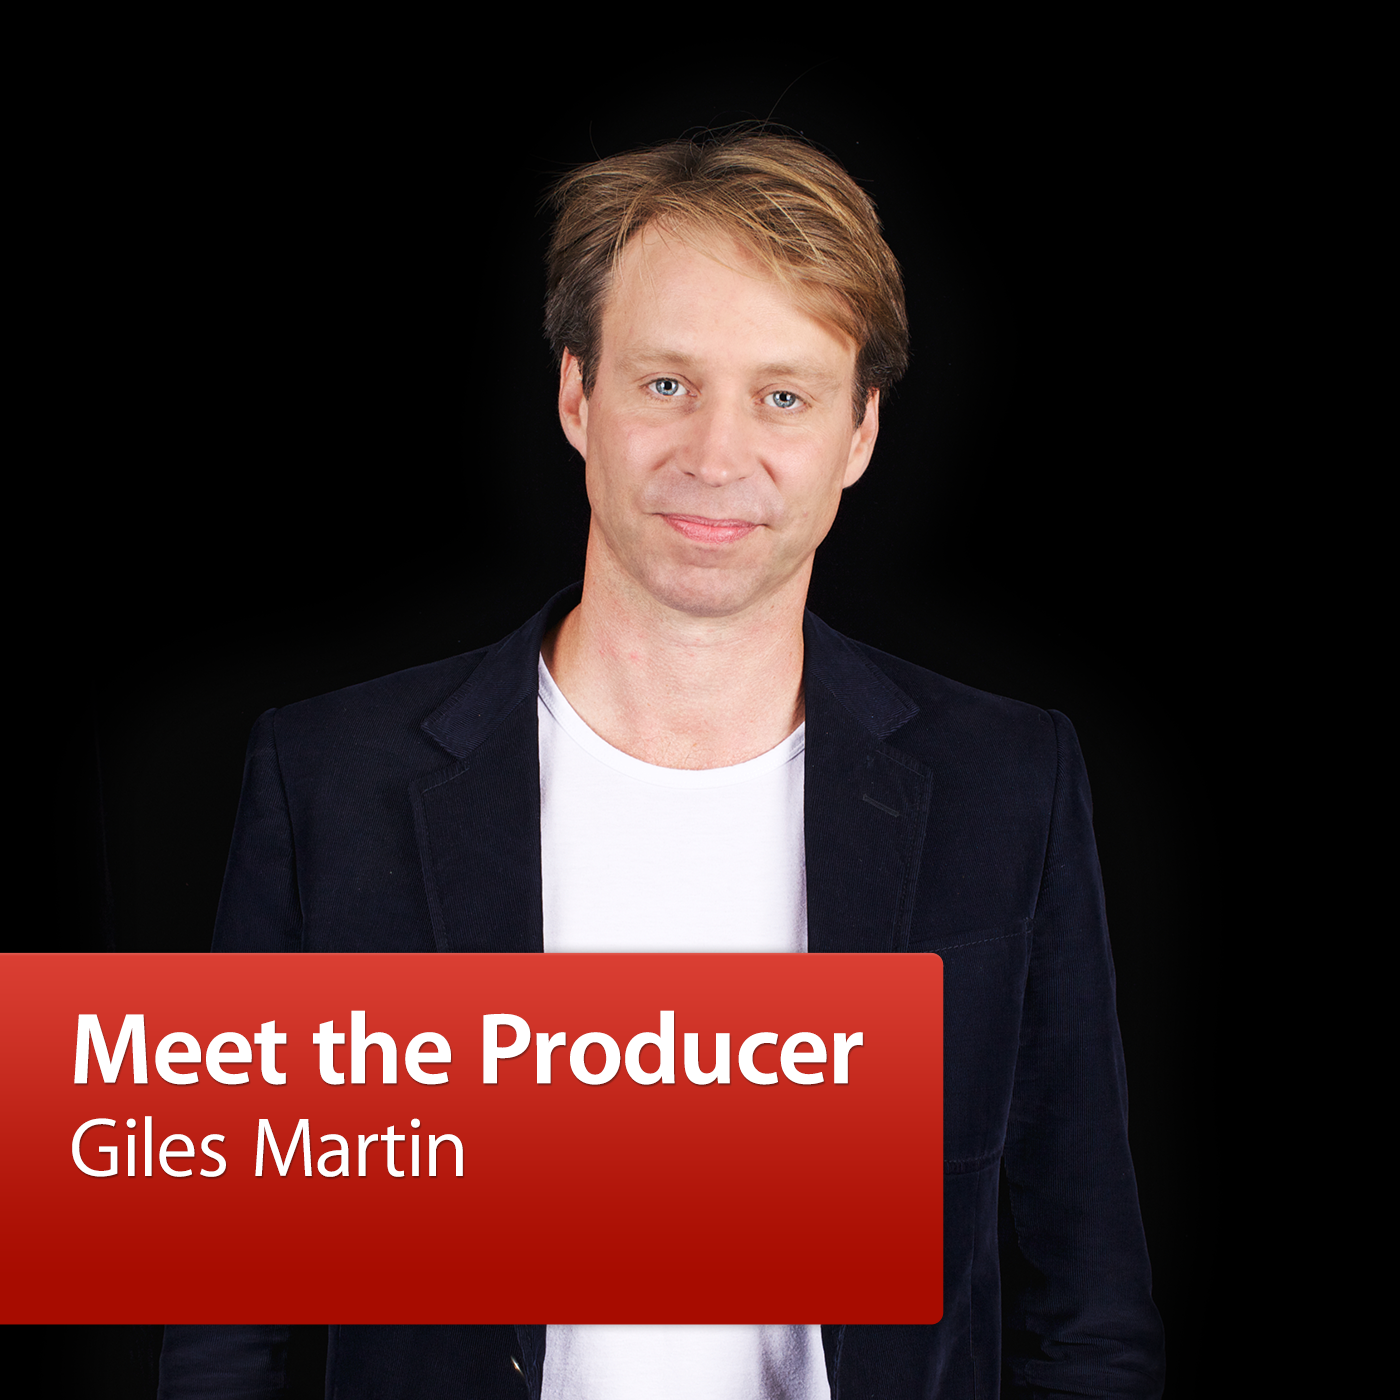 Giles Martin: Meet the Producer